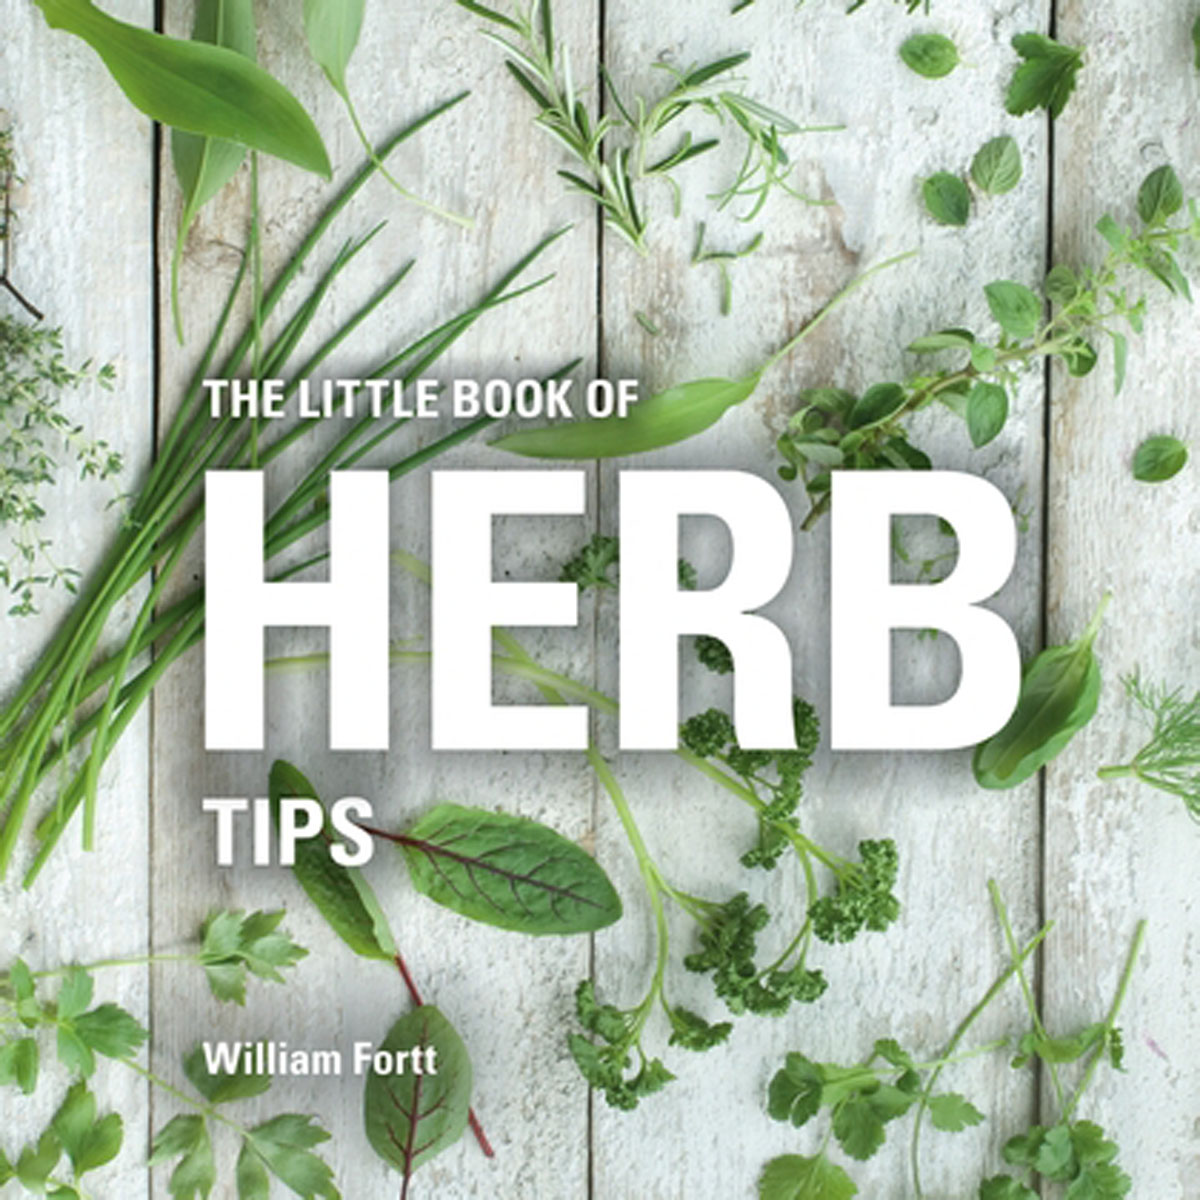 The Little Book of Herb Tips basil mosenthal the sailor s little book